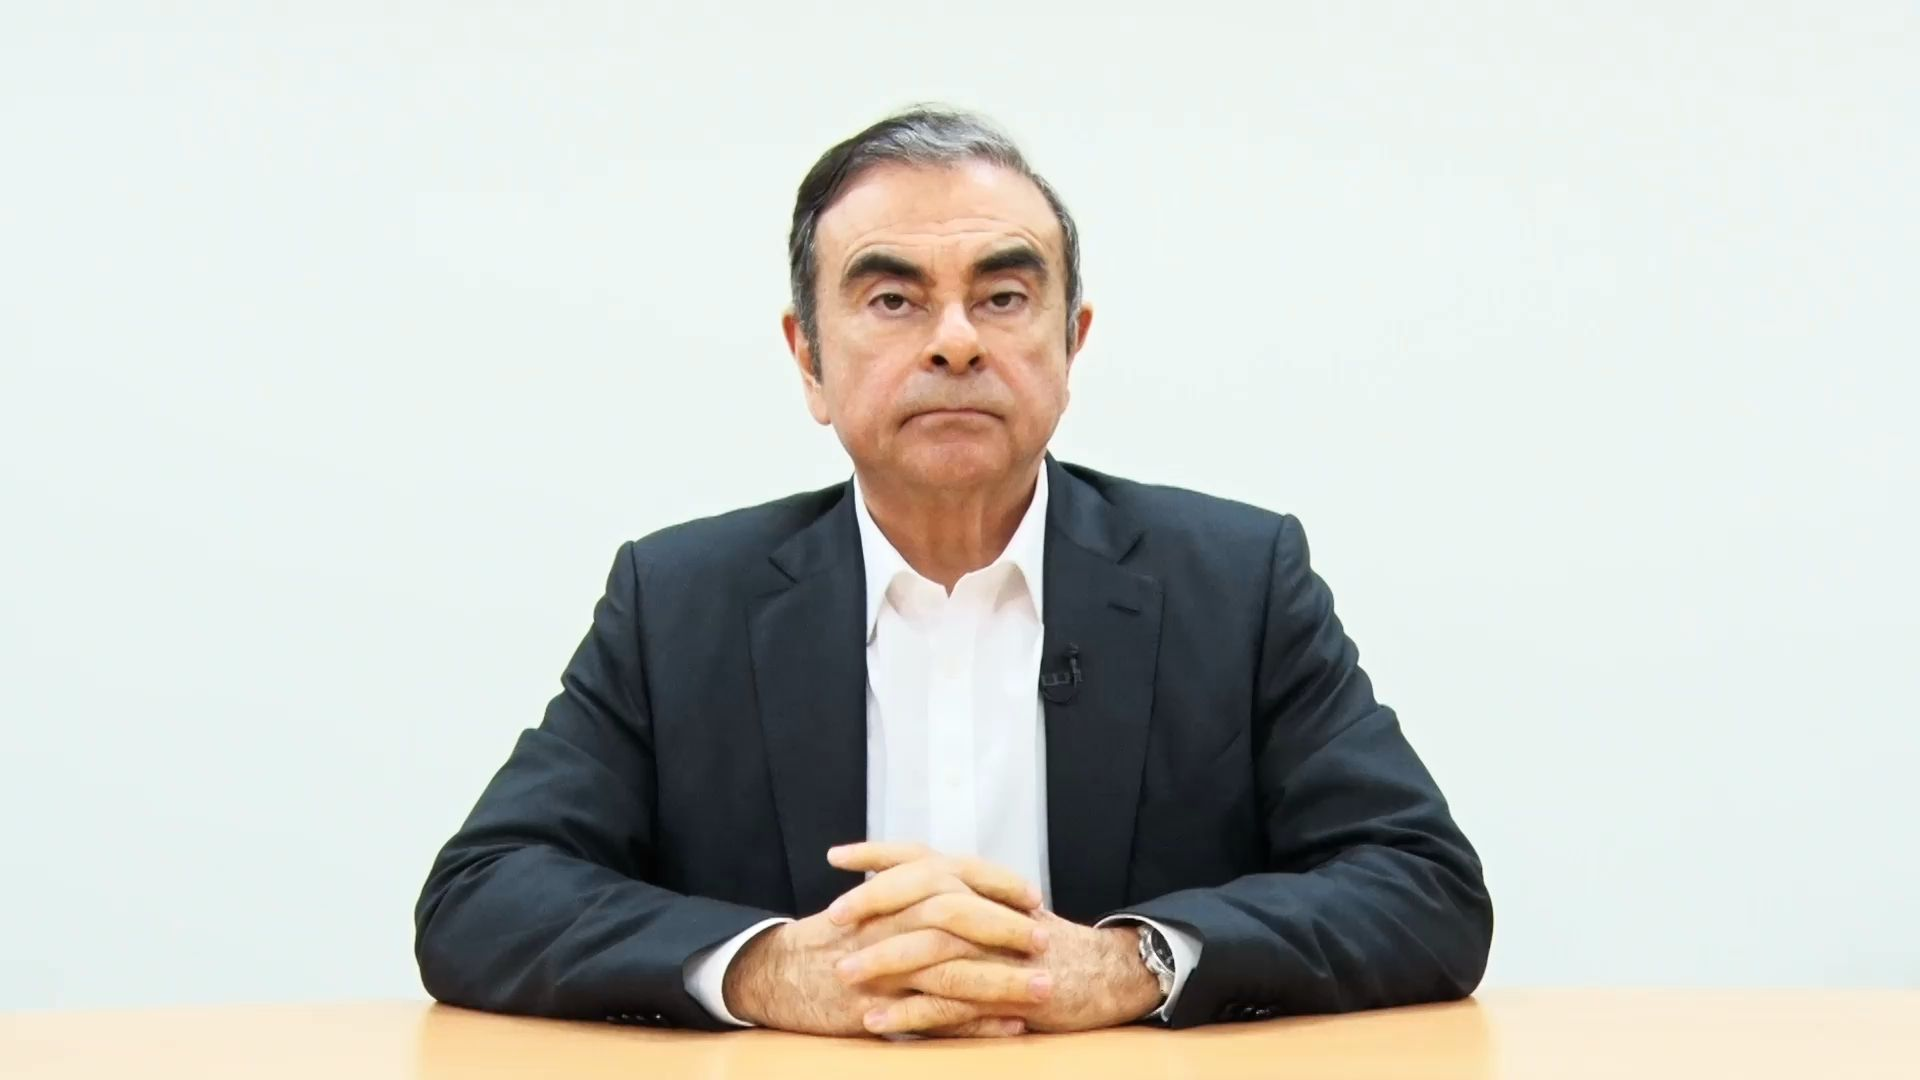 Carlos Ghosn sitting at a table with his hands crossed.